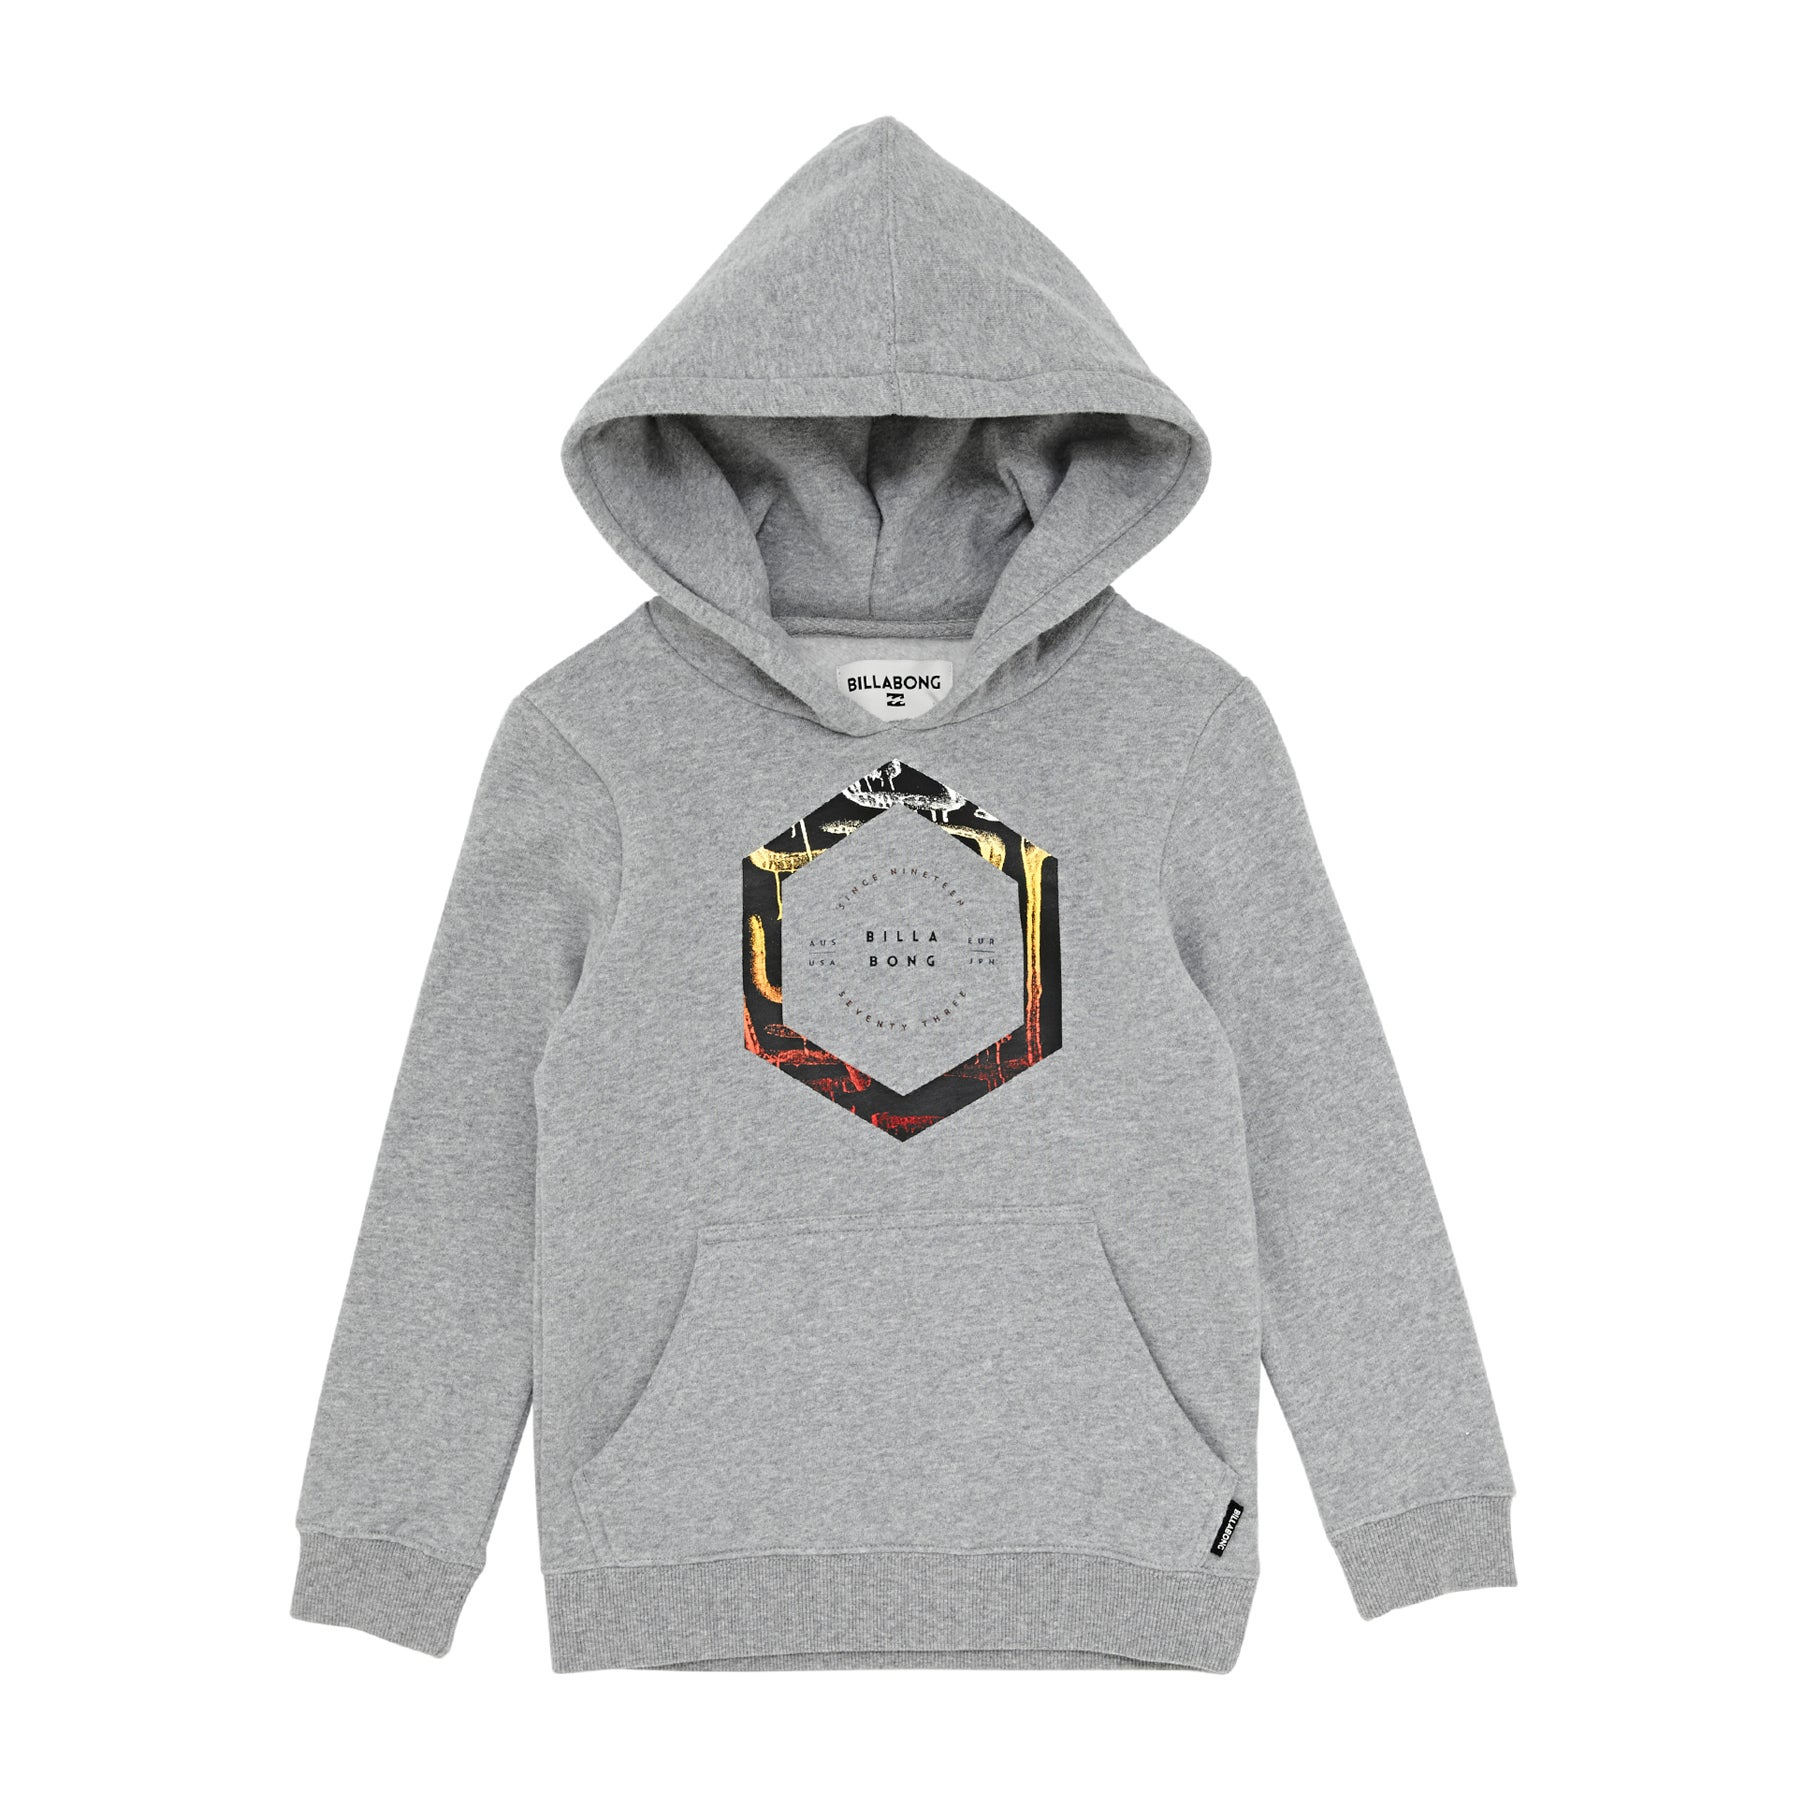 Billabong Howling Boys Pullover Hoody - Grey Heather